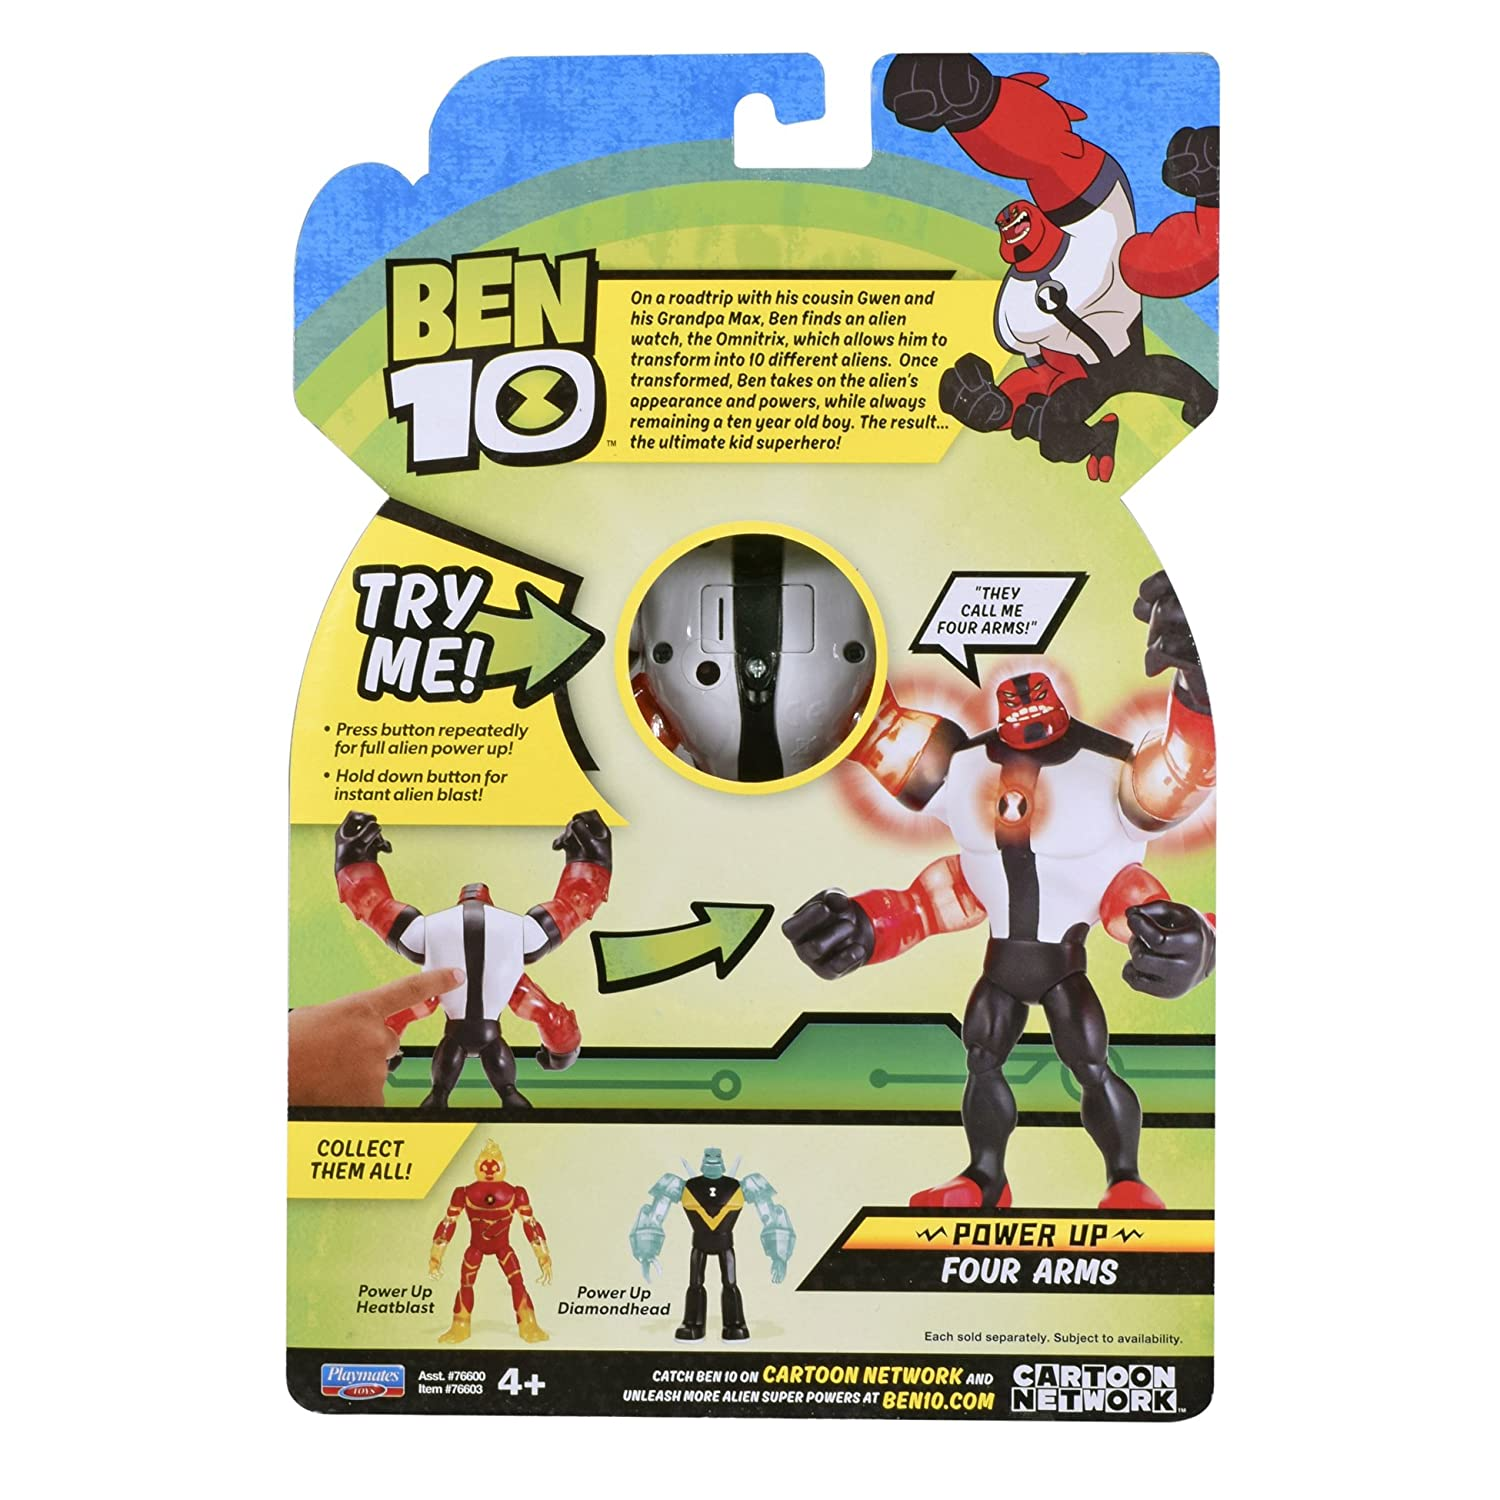 Ben 10 Power Up Four Arms Deluxe Action Figure Playmates Toys 76603